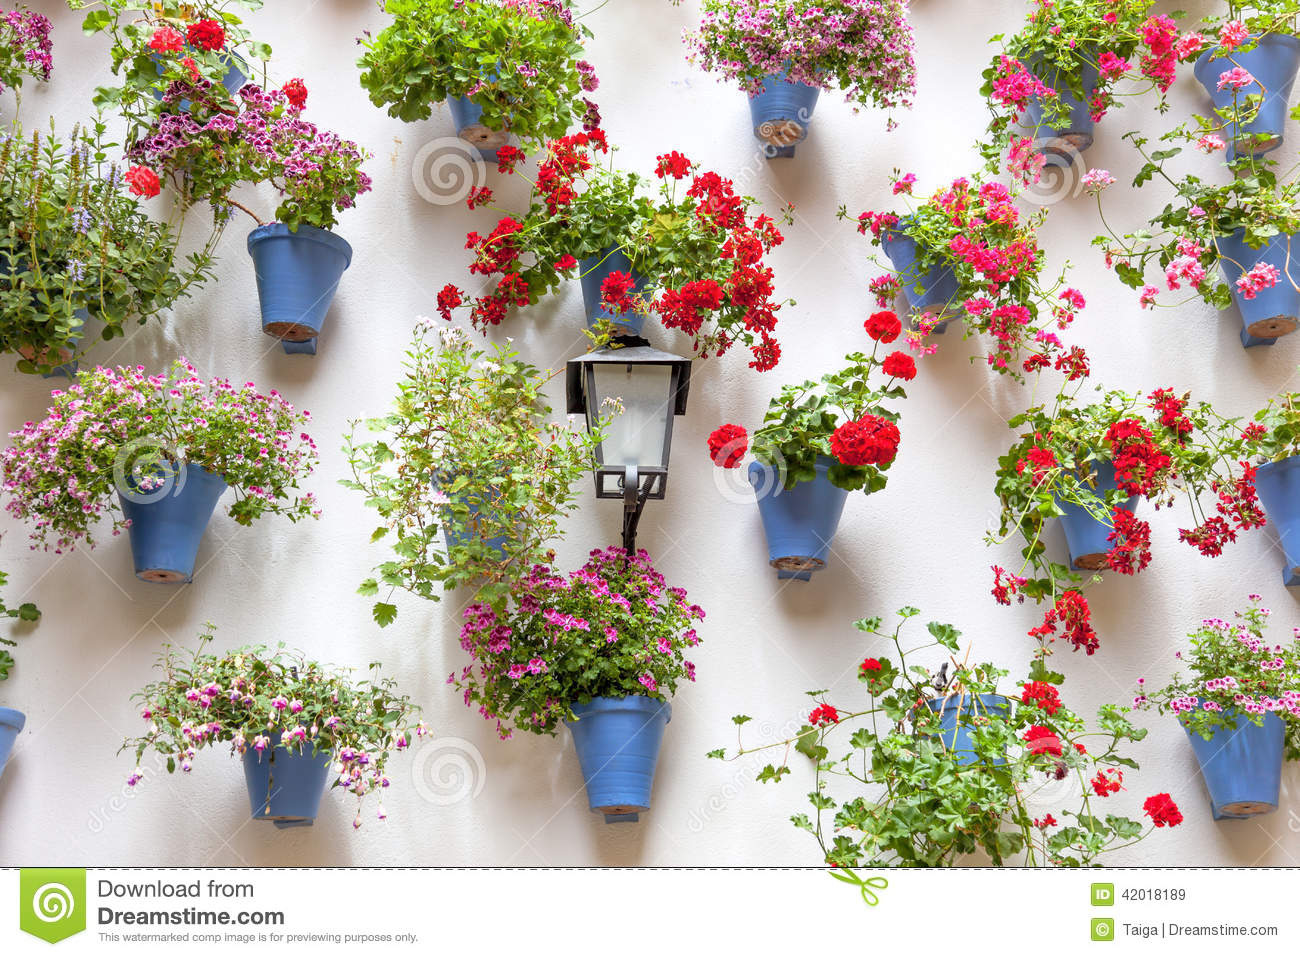 Blue Flowerpots And Red Flowers On A White Wall With